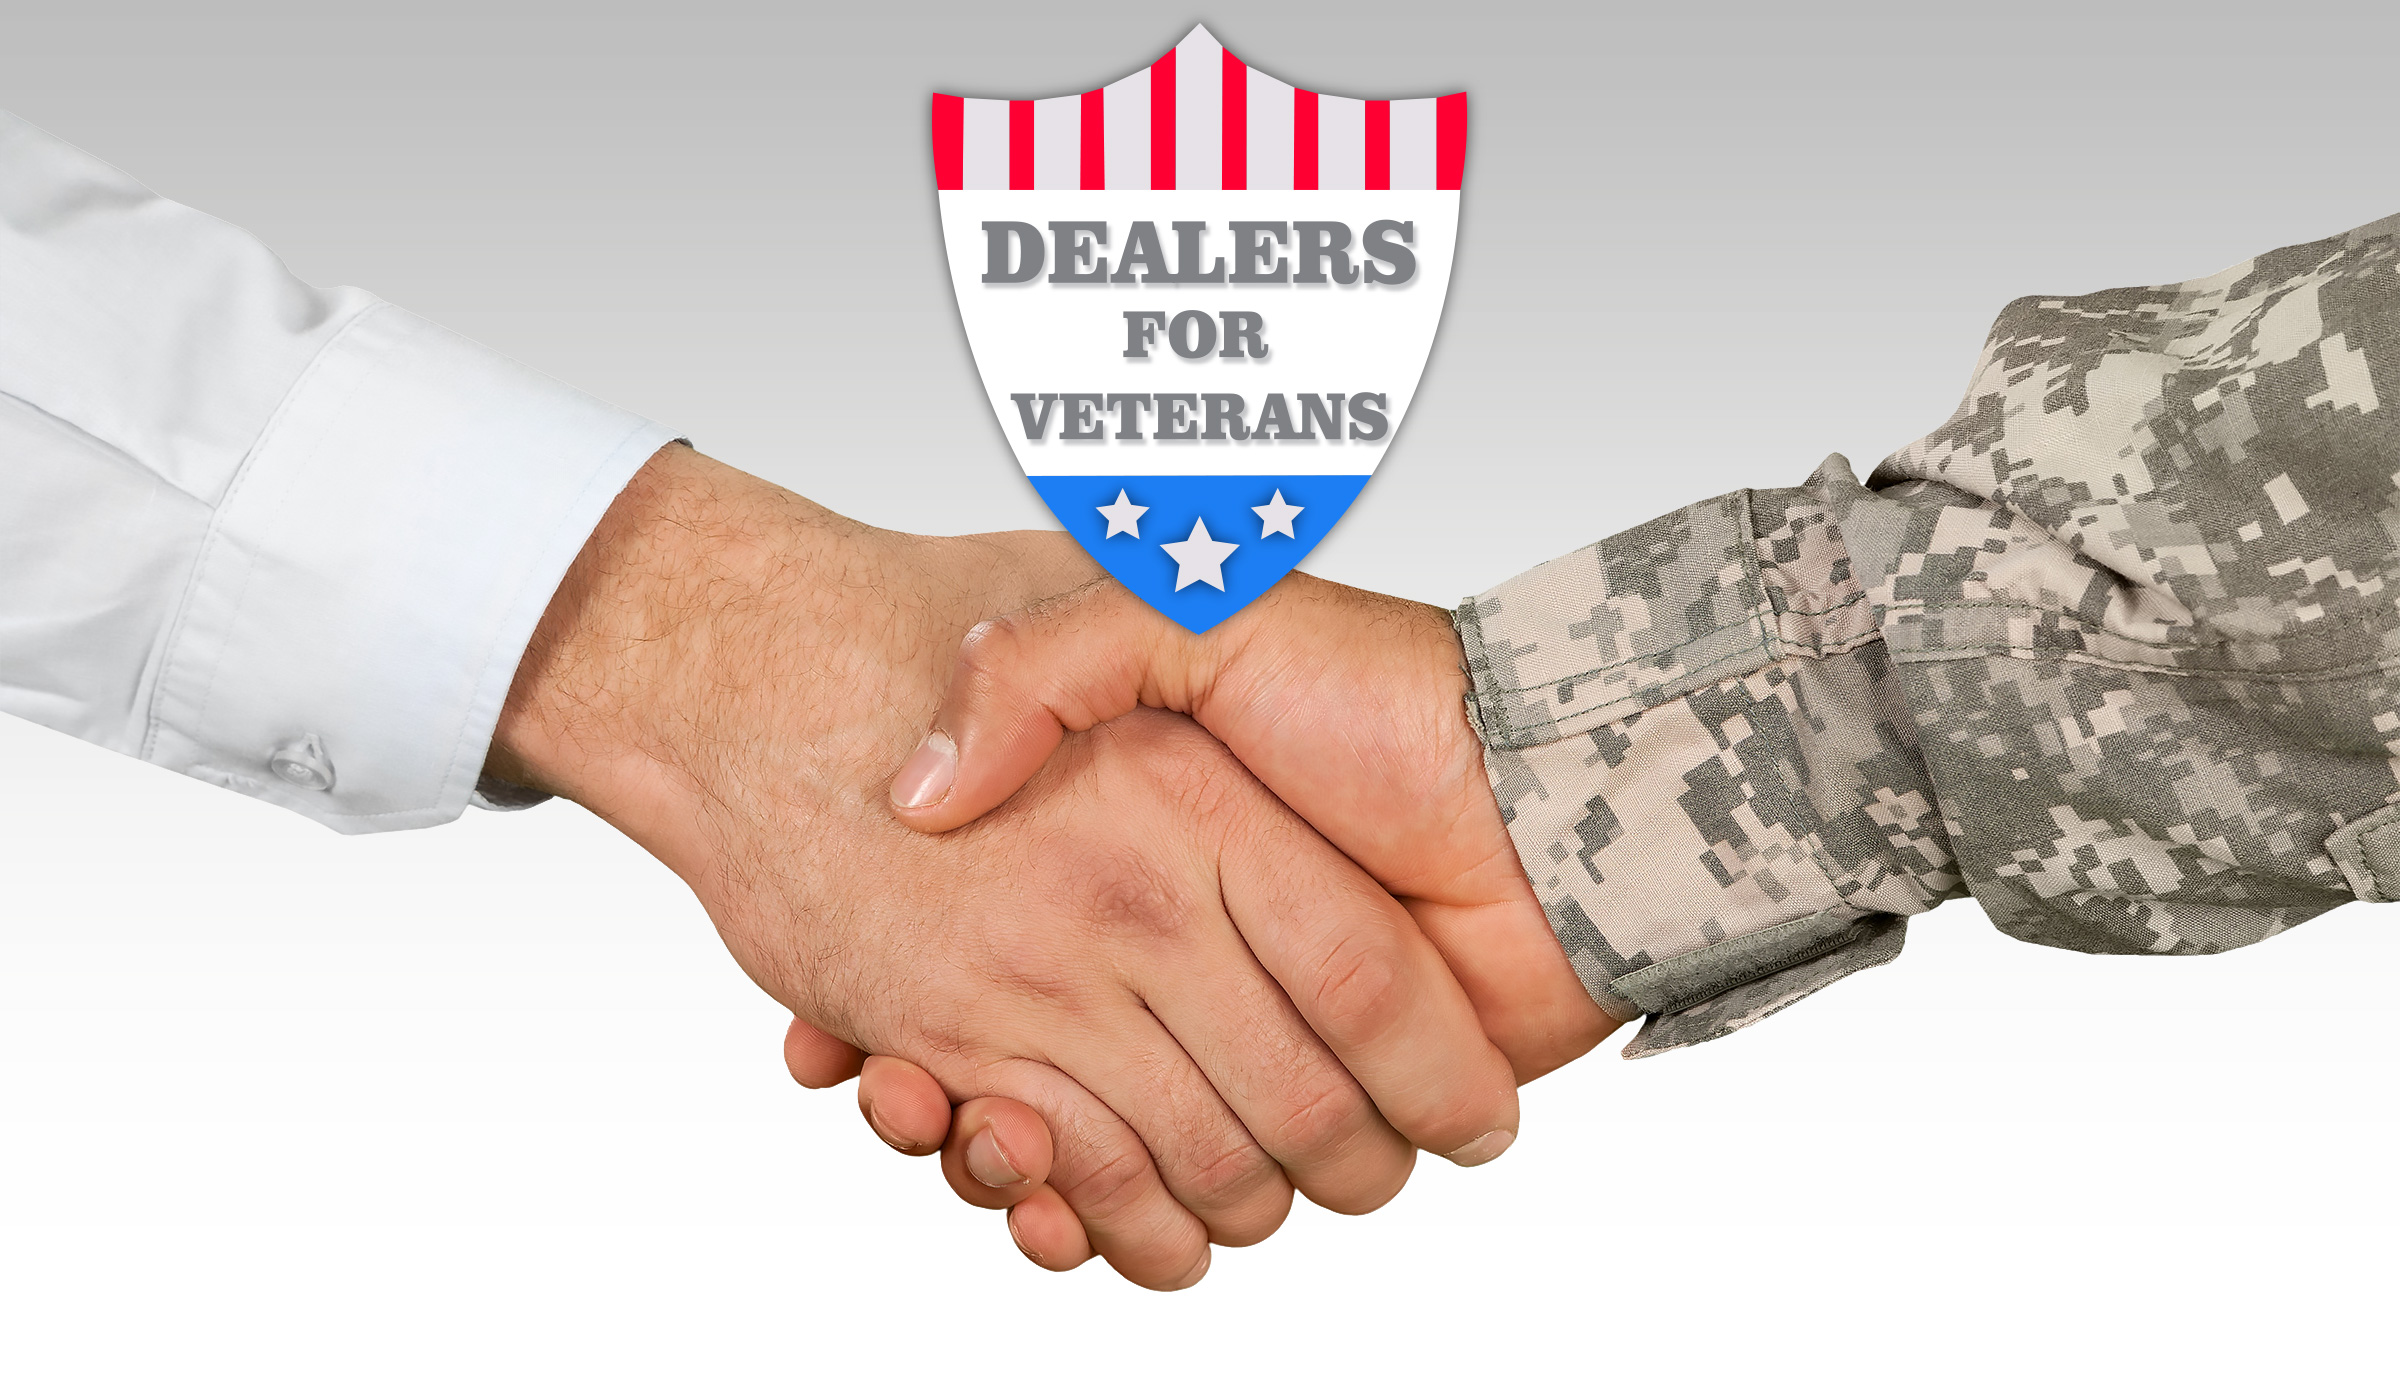 """Featured image for """"Dealers for Veterans Press Release"""""""